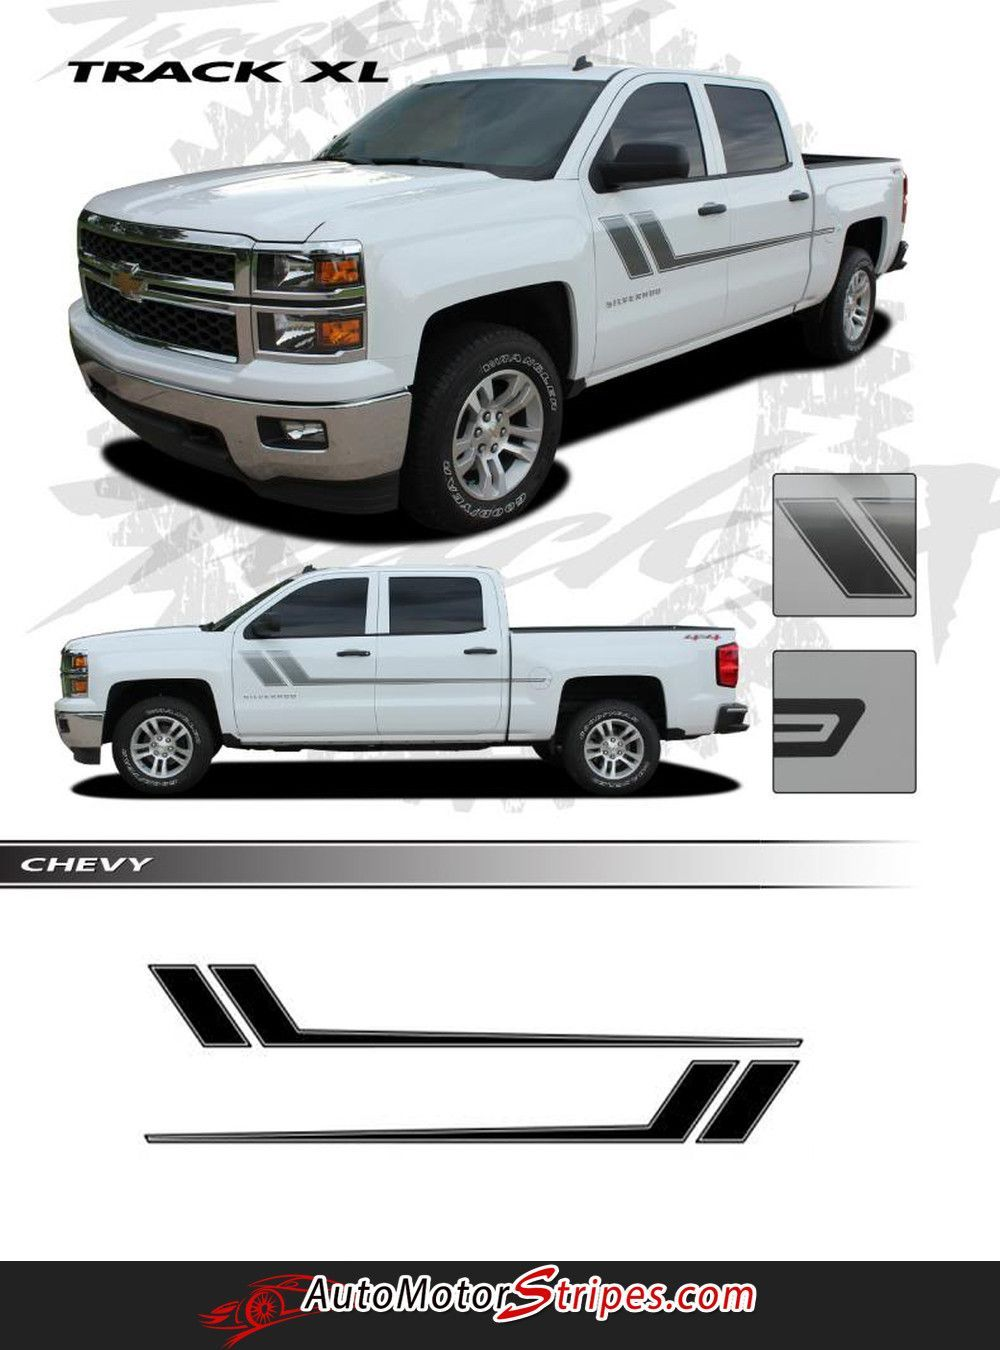 Vehicle specific style chevy silverado truck track xl side door hockey vinyl graphic stripe decals year fitment 2007 2008 2009 2010 2011 2012 2013 2014